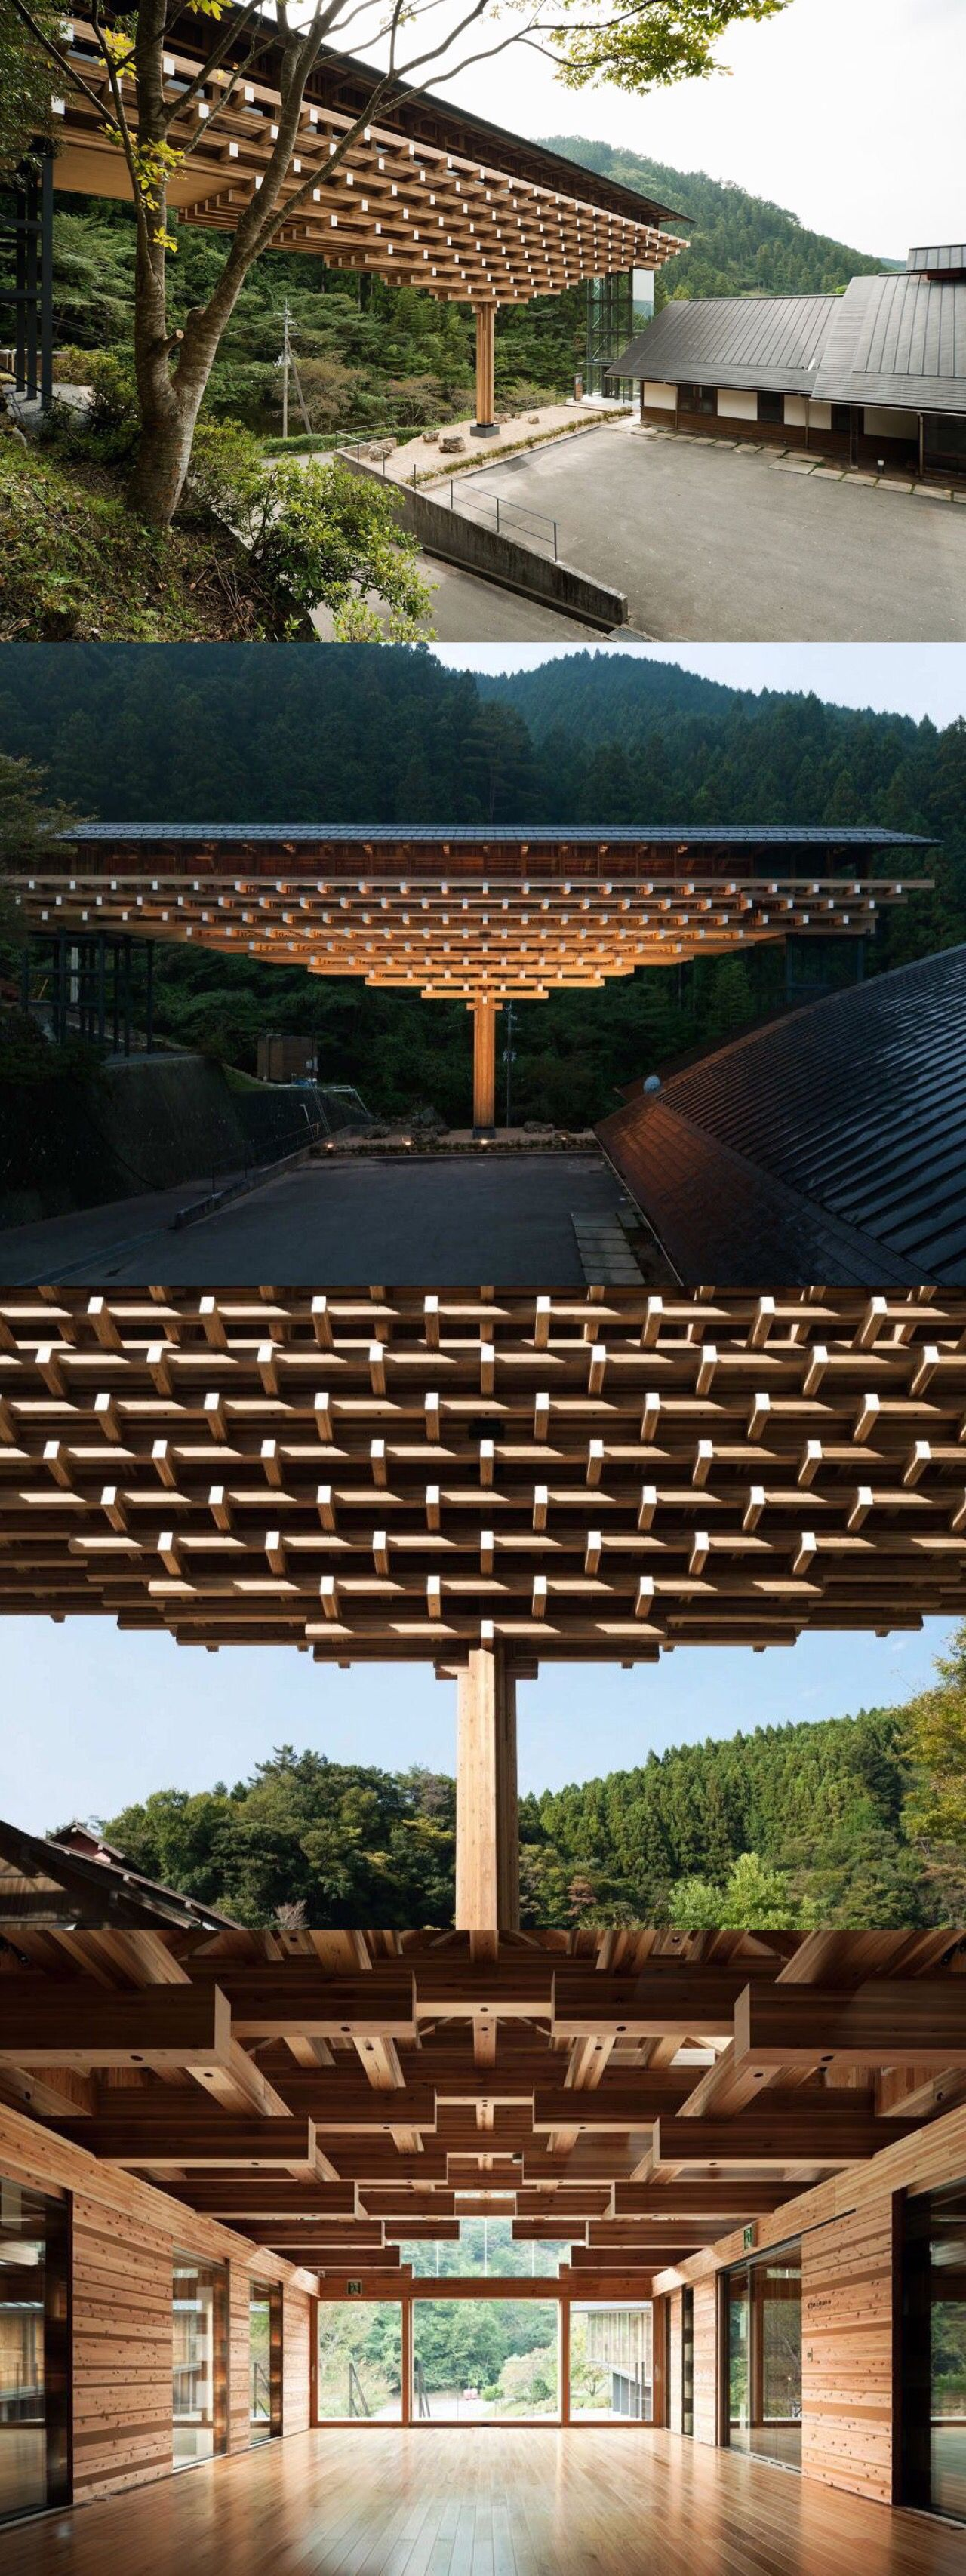 yusuhara wooden bridge museum kengo kuma associates great architecture pinterest. Black Bedroom Furniture Sets. Home Design Ideas